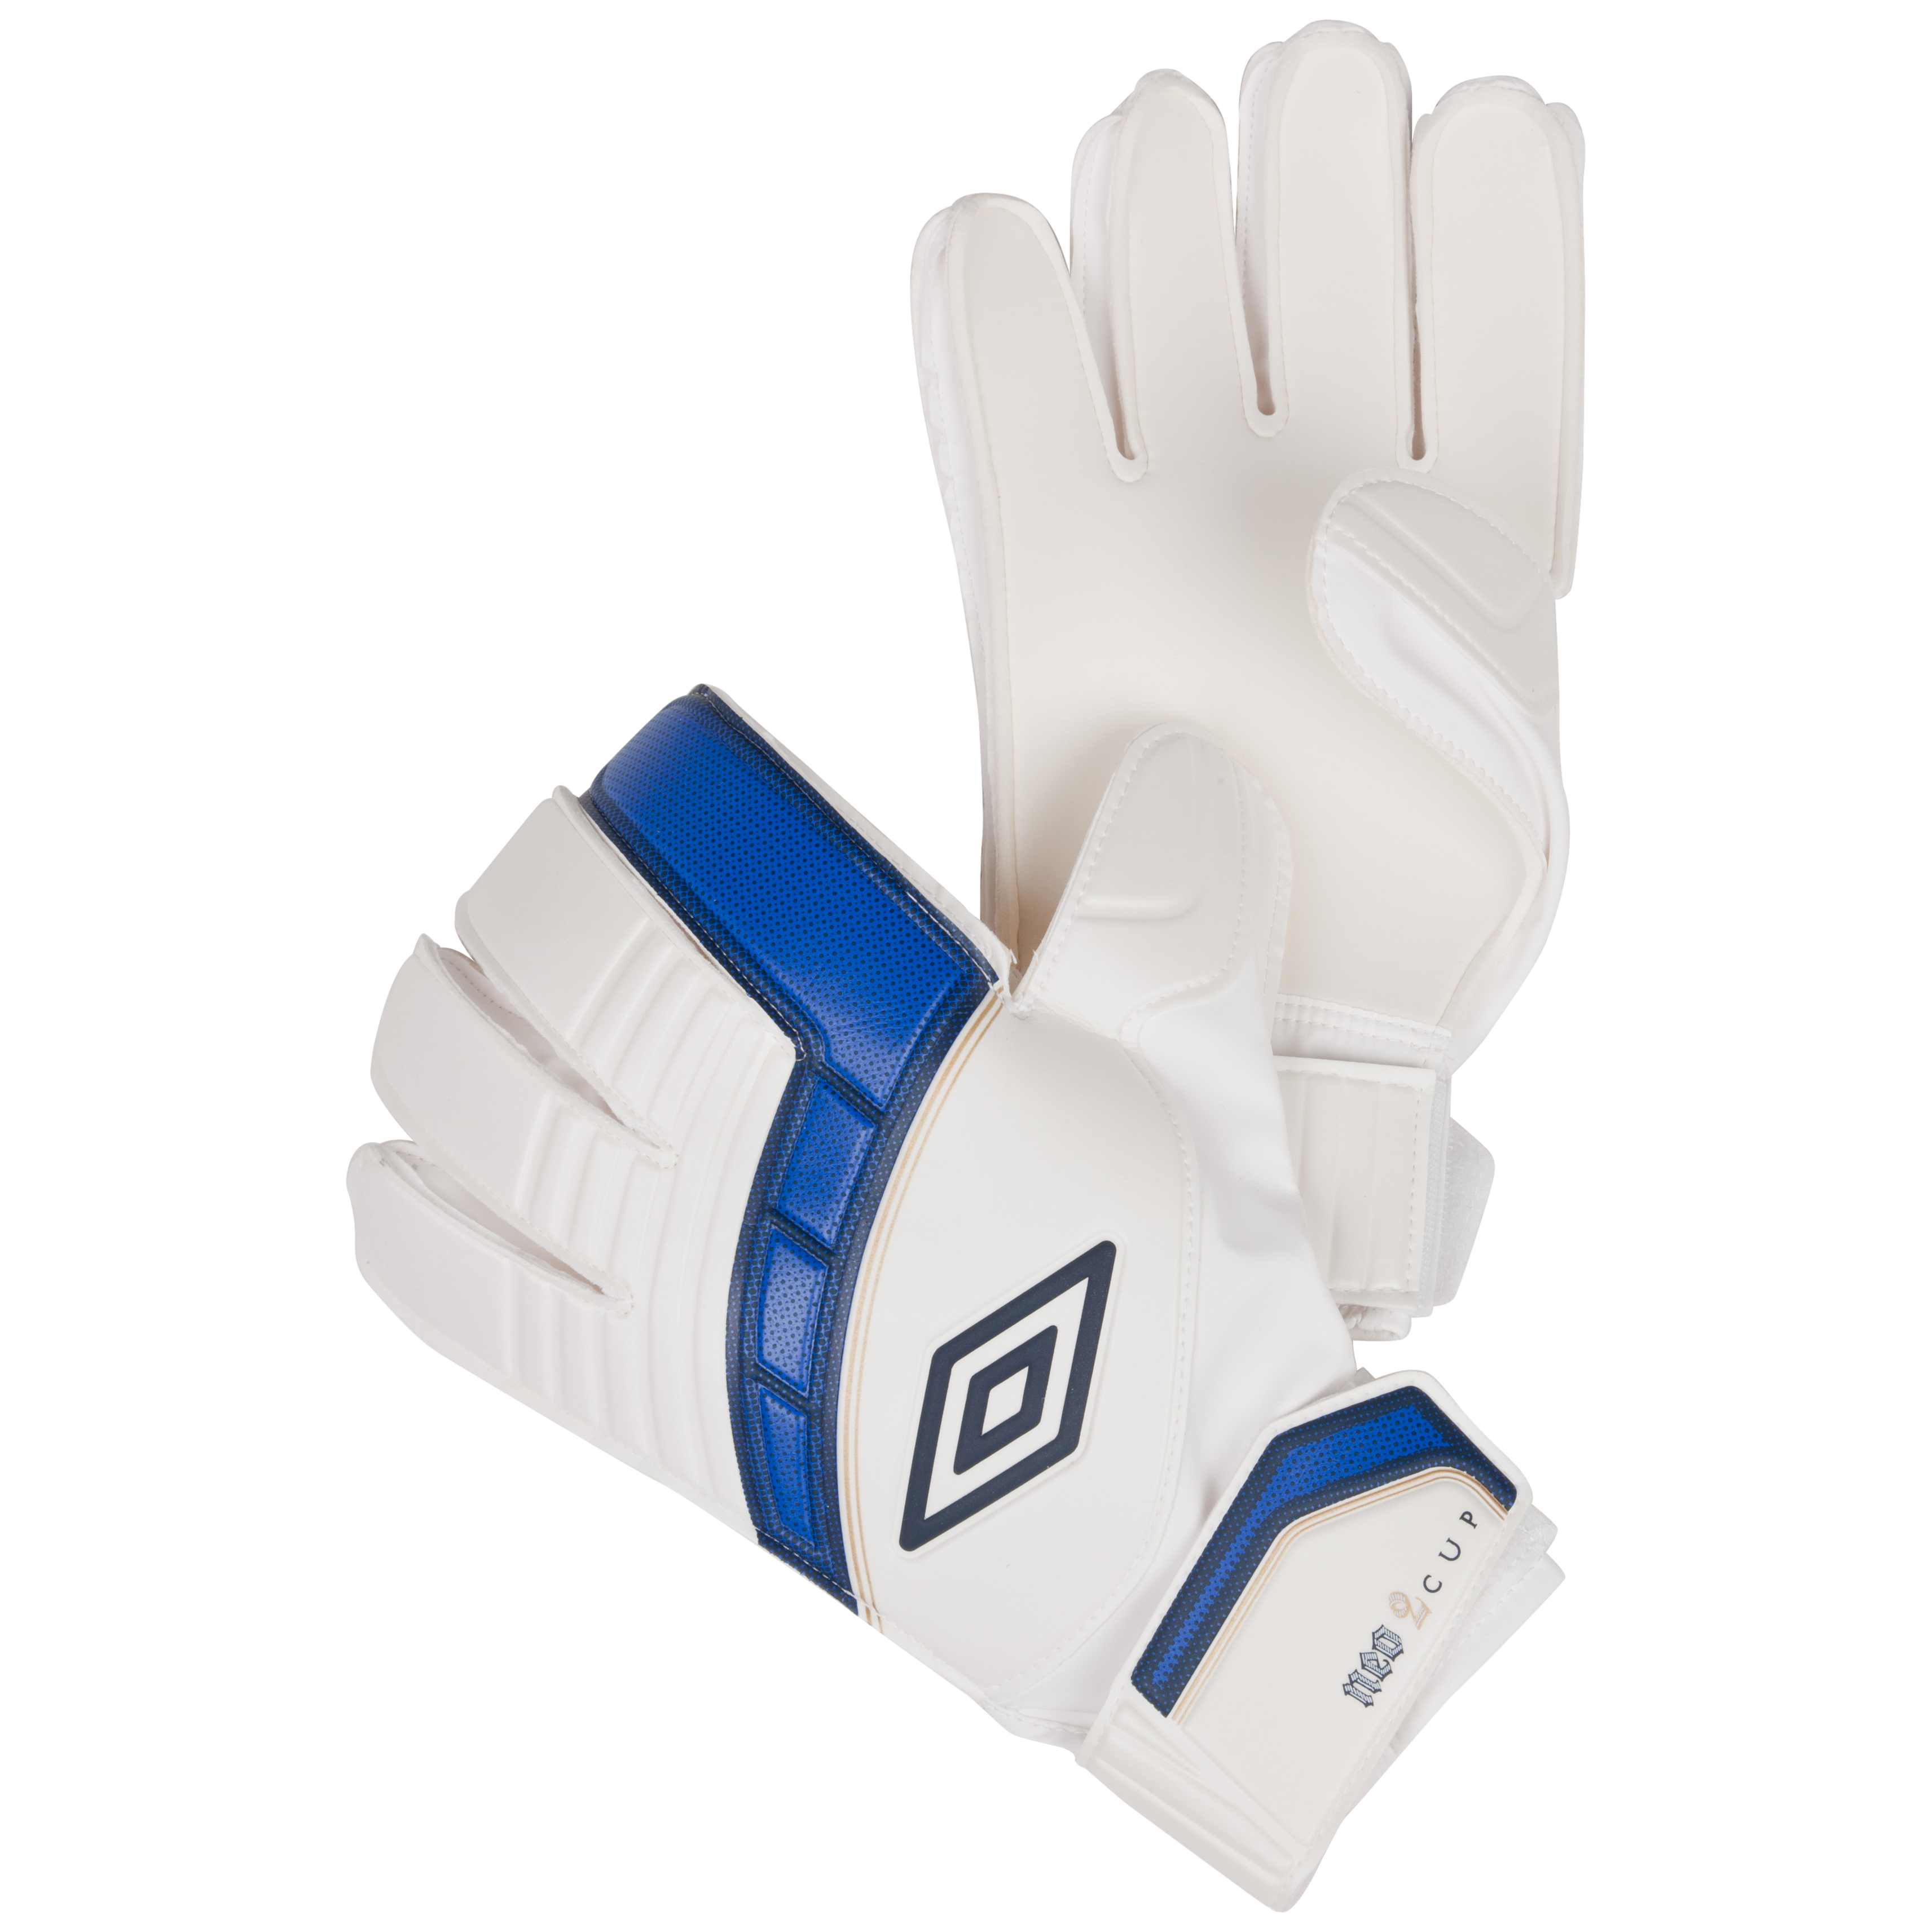 Umbro Neo Cup Goalkeeper Gloves-White / Twilight Blue / Gold